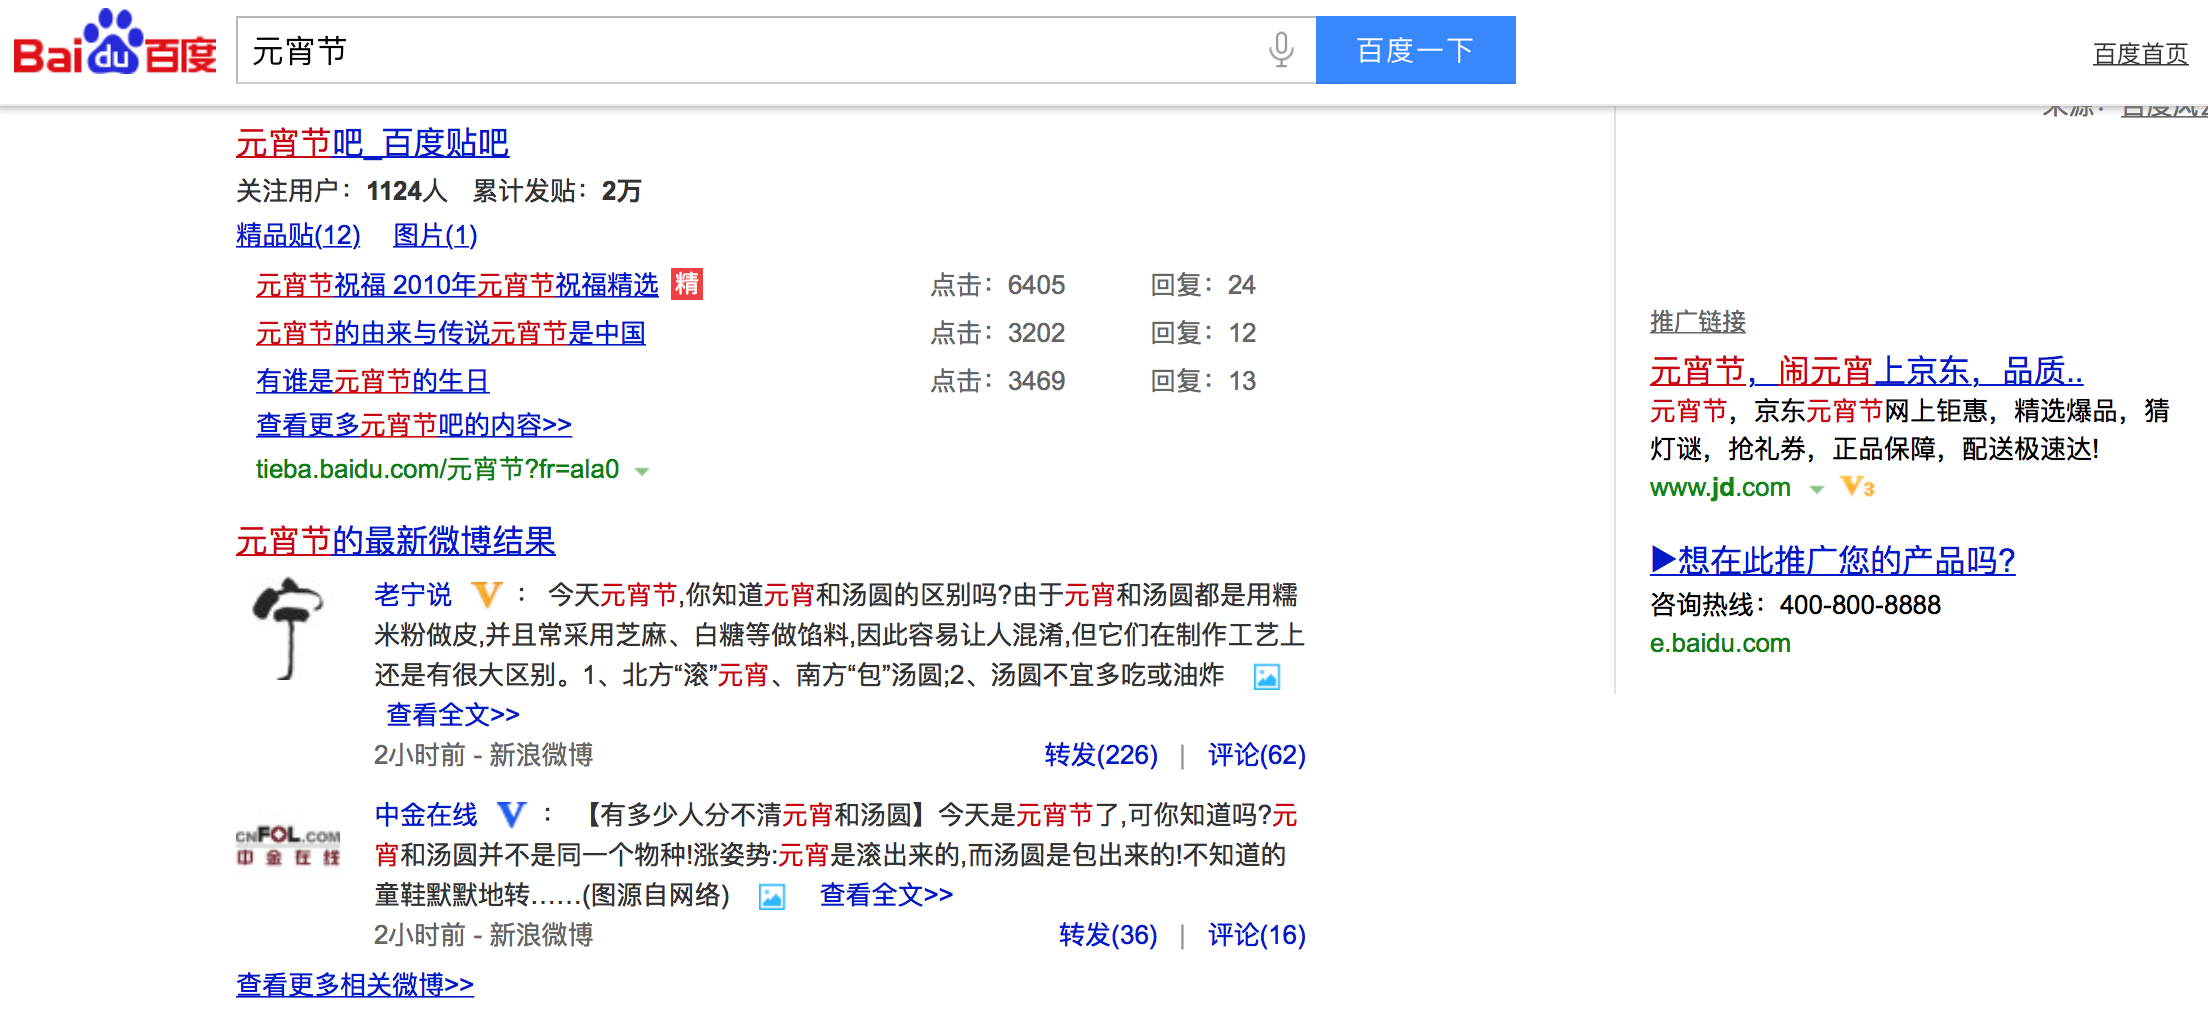 baidu-ad-right-side